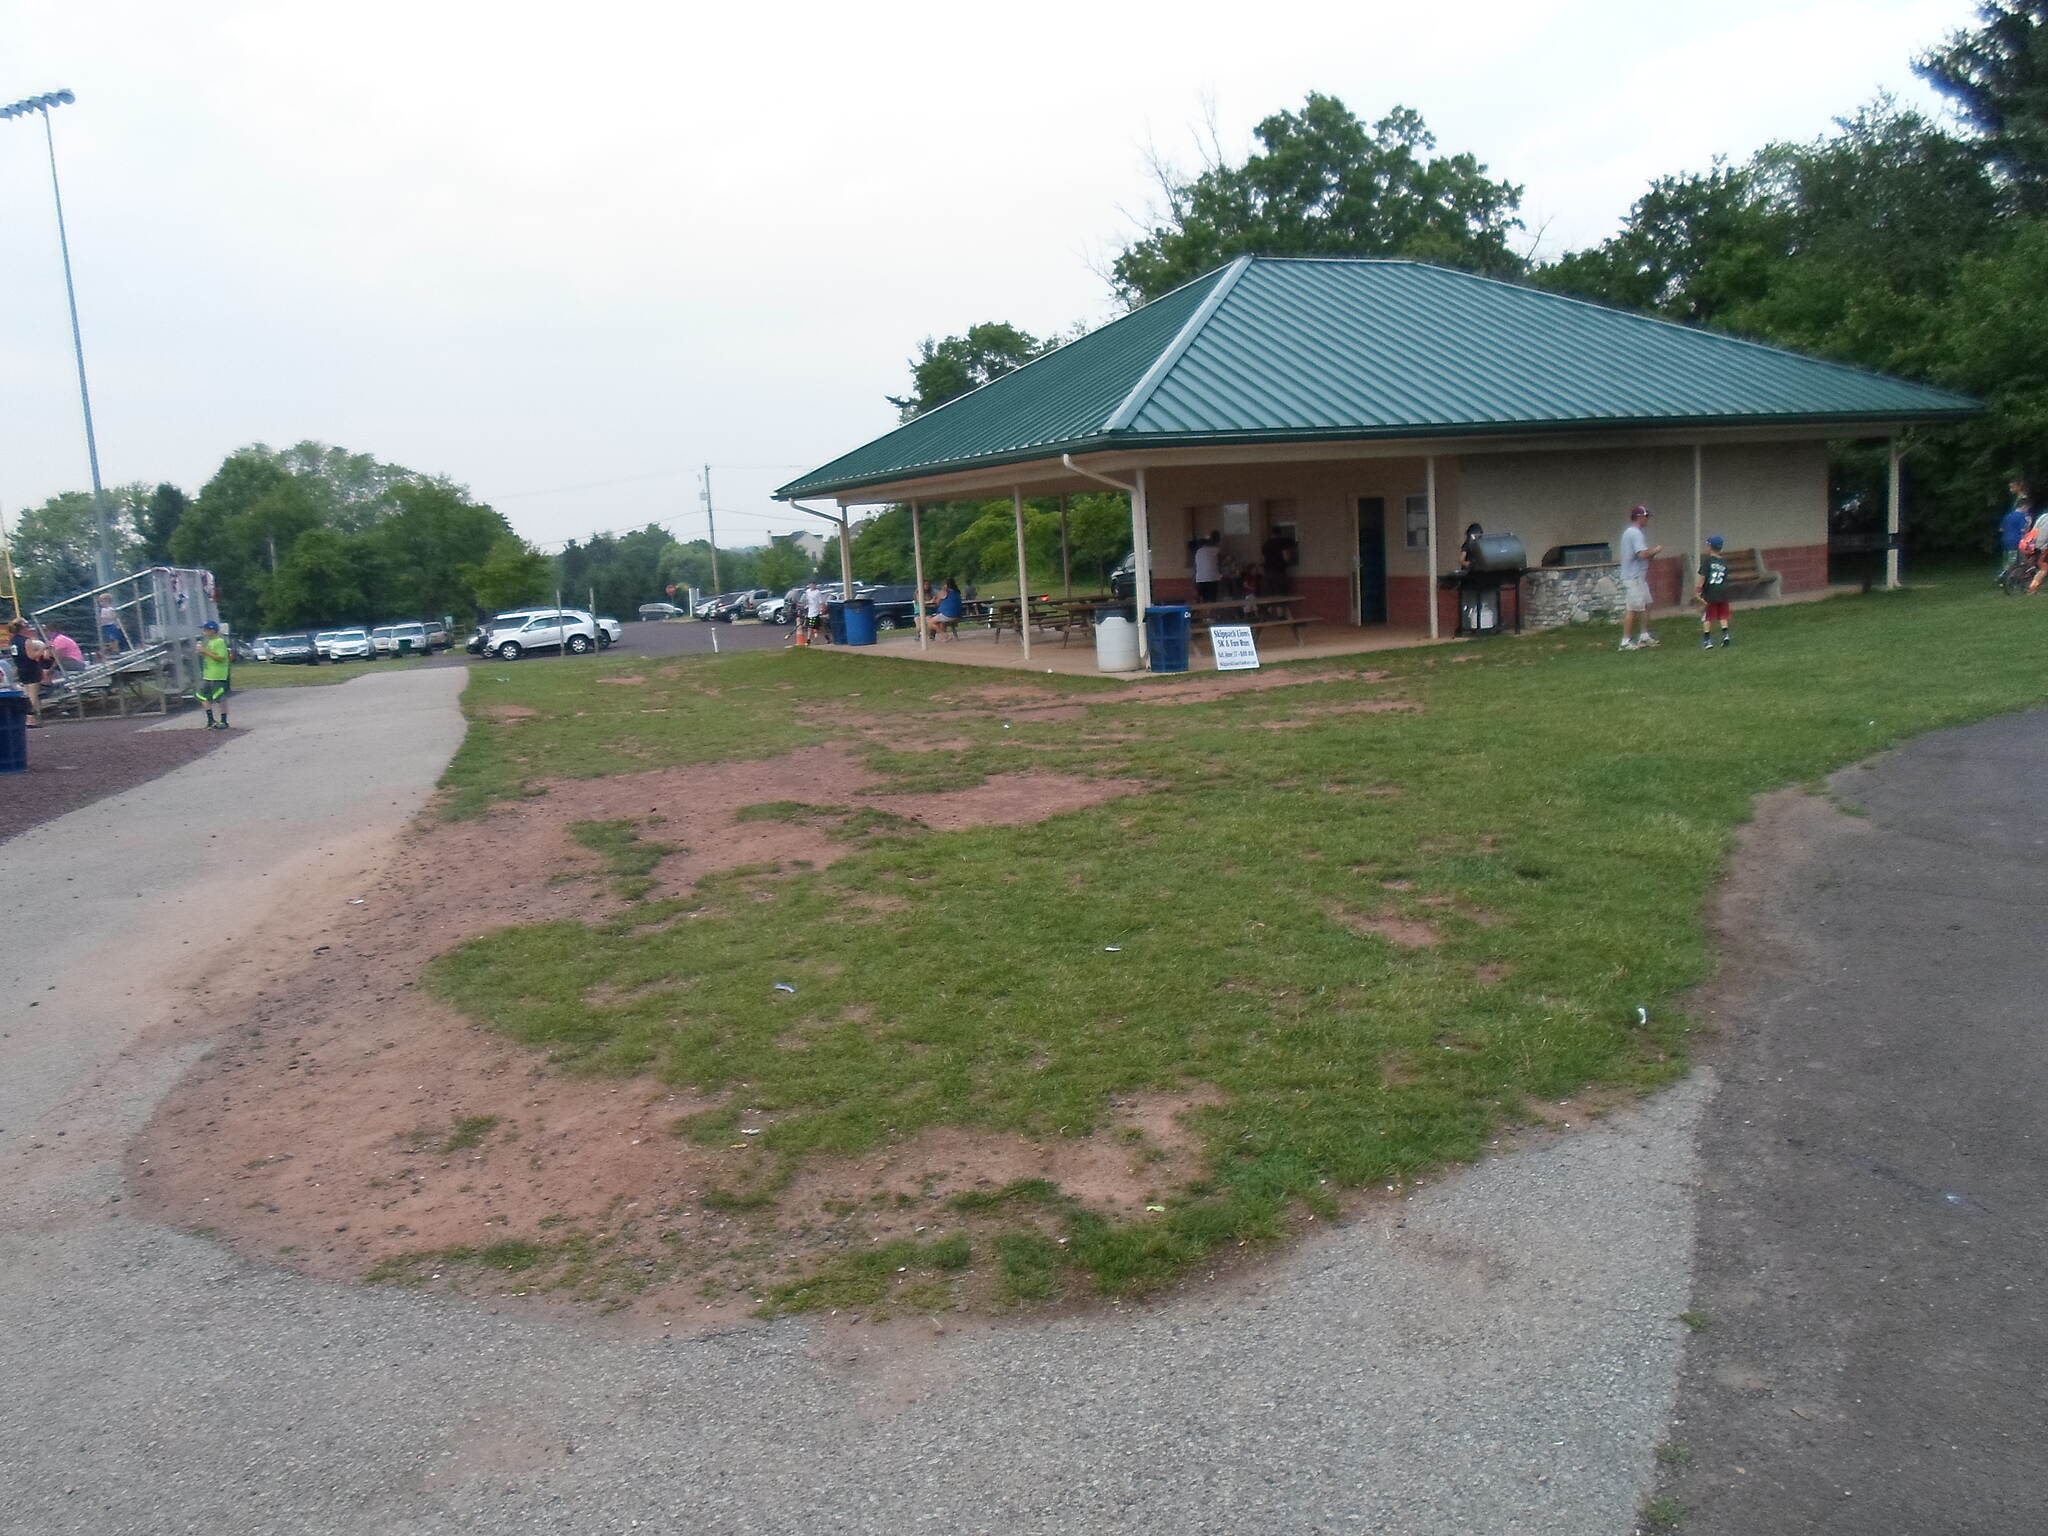 Skippack Trail Skippack Trail Curving around the concession stand and ballfield in Palmer Park. Trail users who pass by here during a baseball game can stop for low cost, but tasty, hamburgers, hot dogs and snacks.